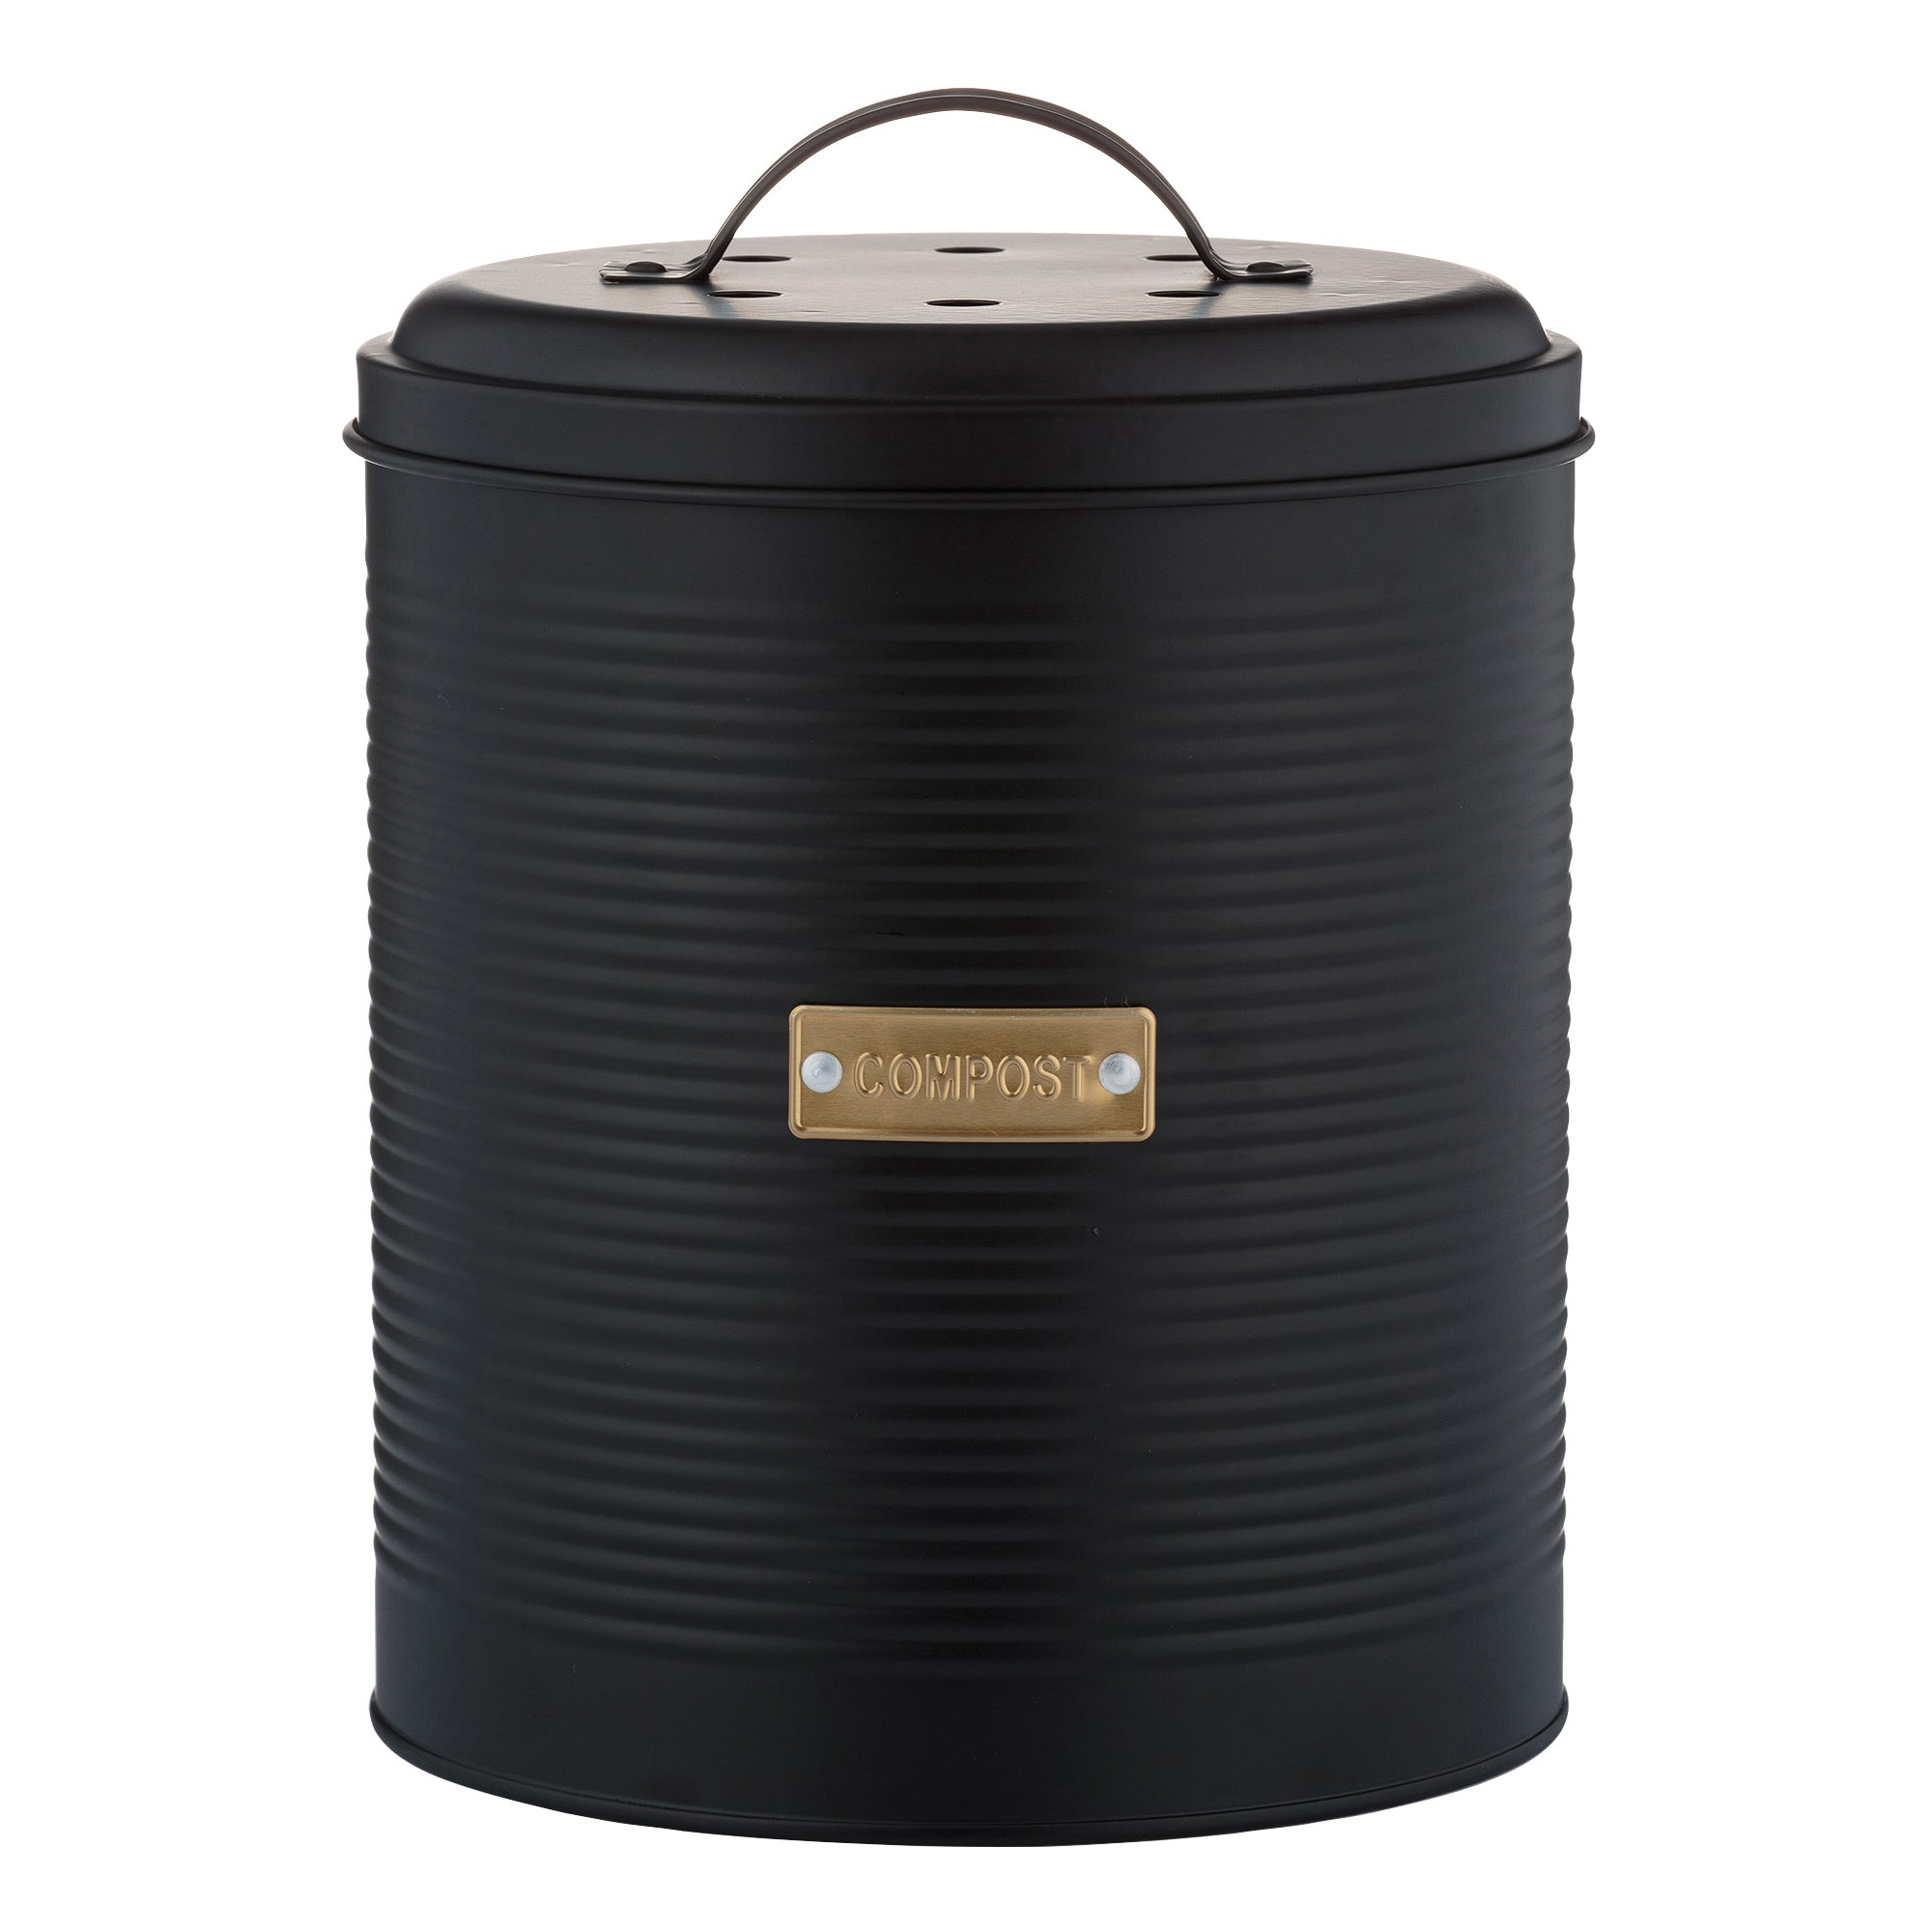 Typhoon Otto Compost Caddy, 2.5 Litre, Black